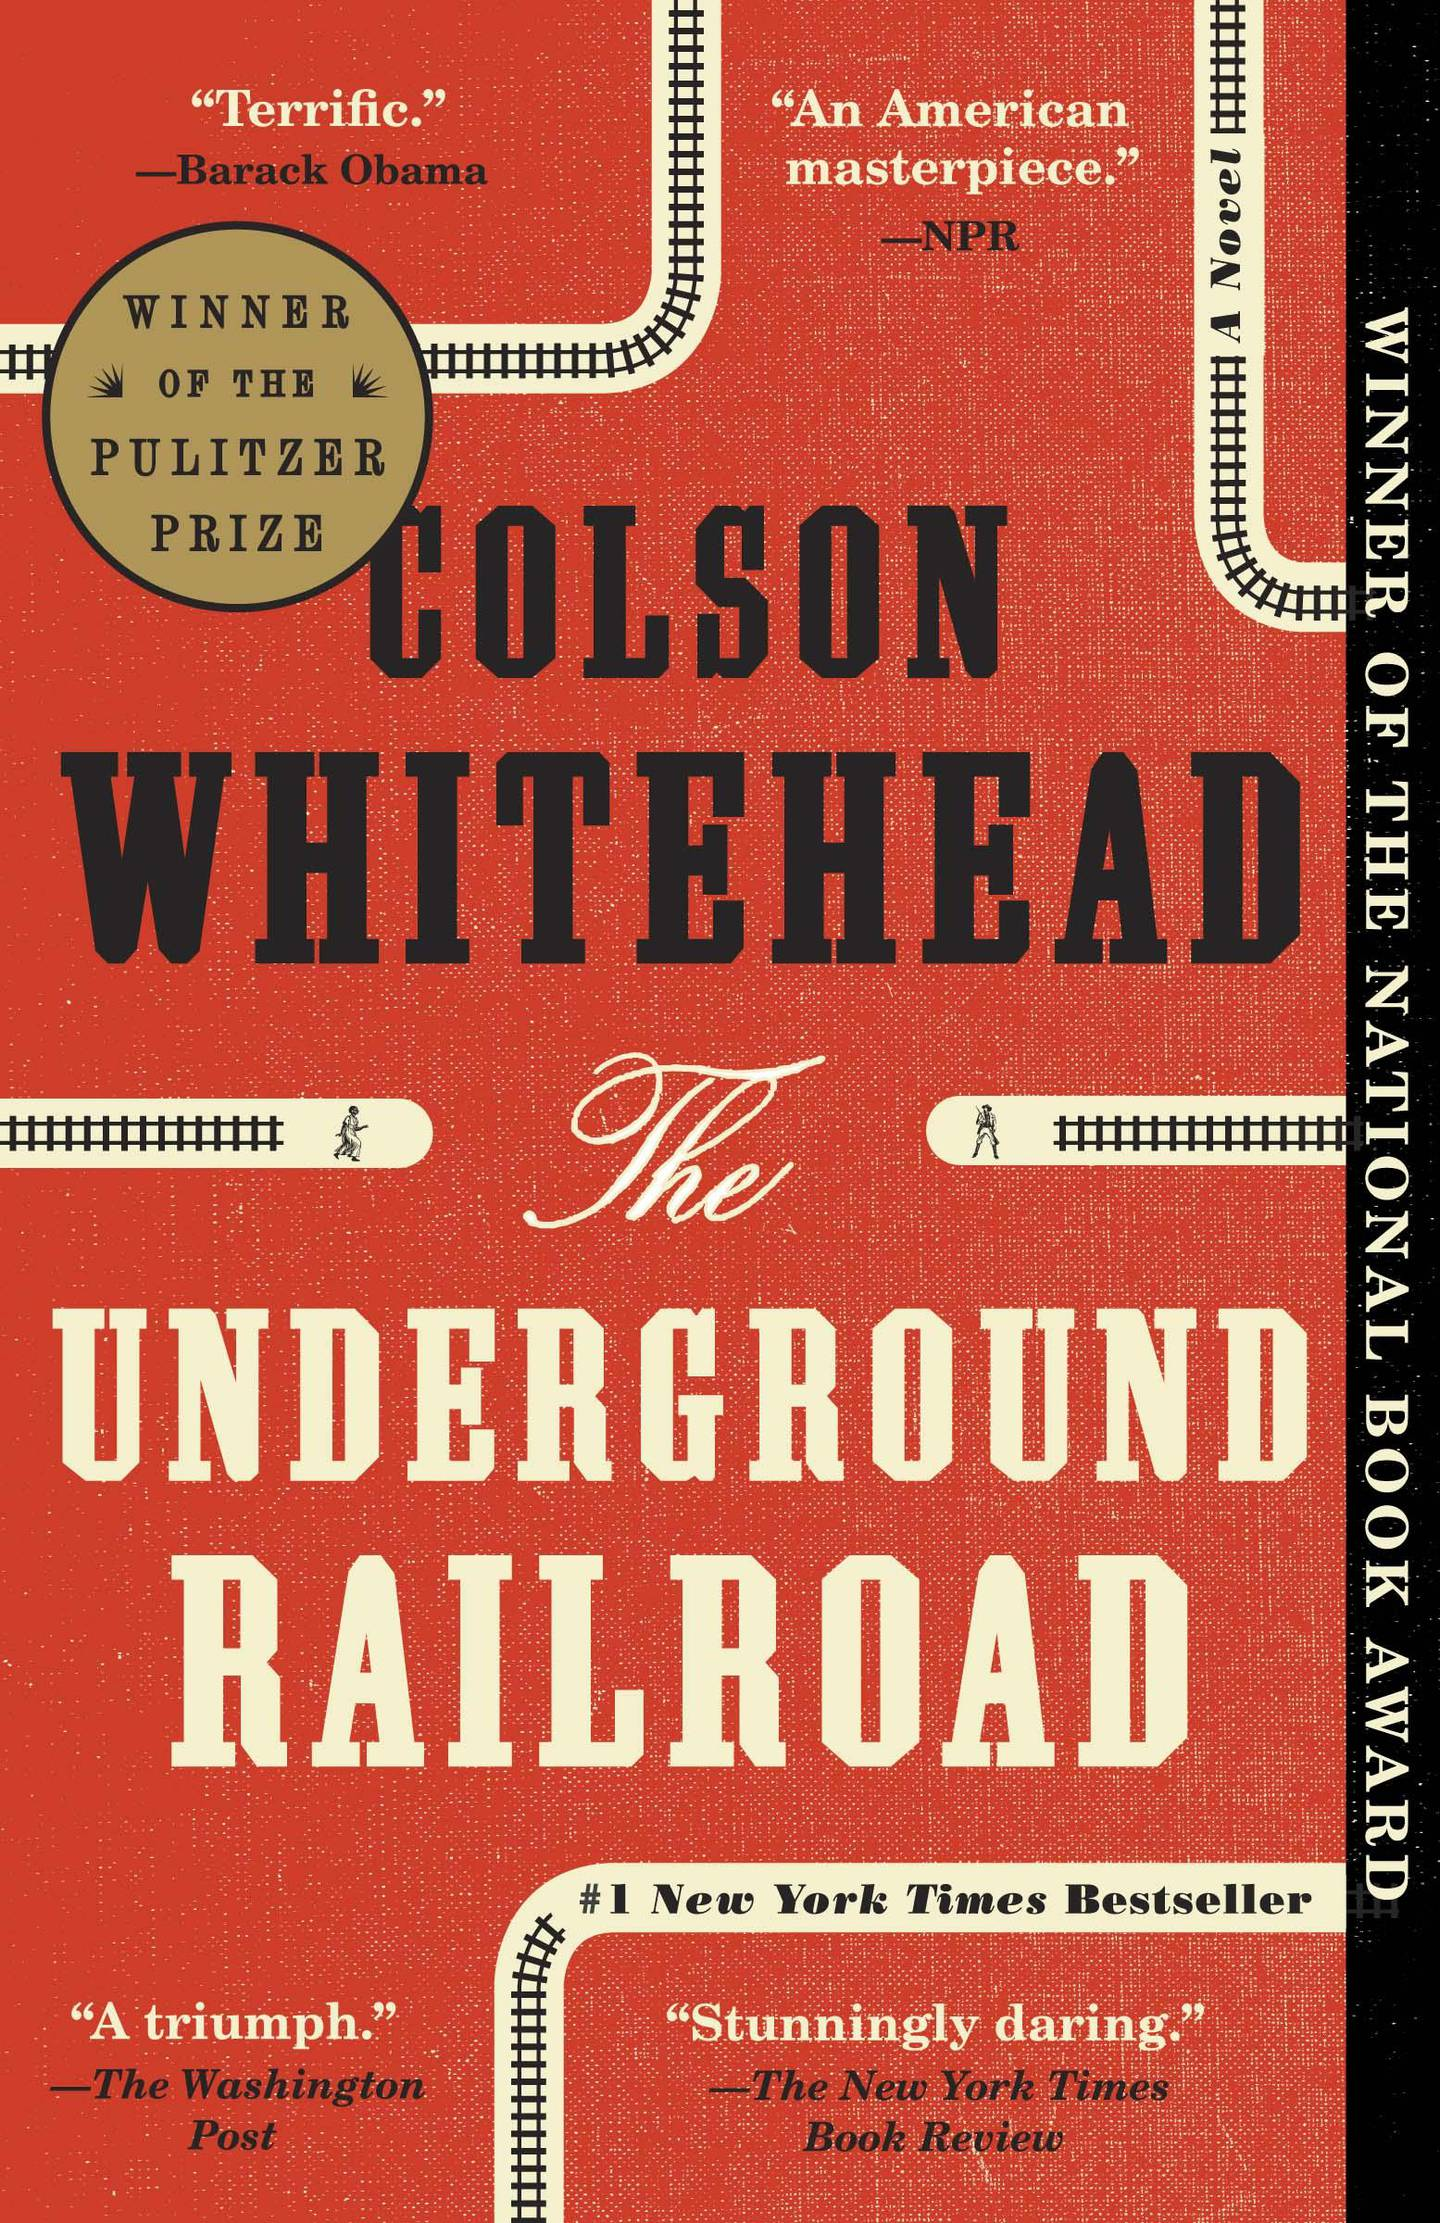 The Underground Railroad by Colson Whitehead published by Doubleday. Courtesy Penguin Random House